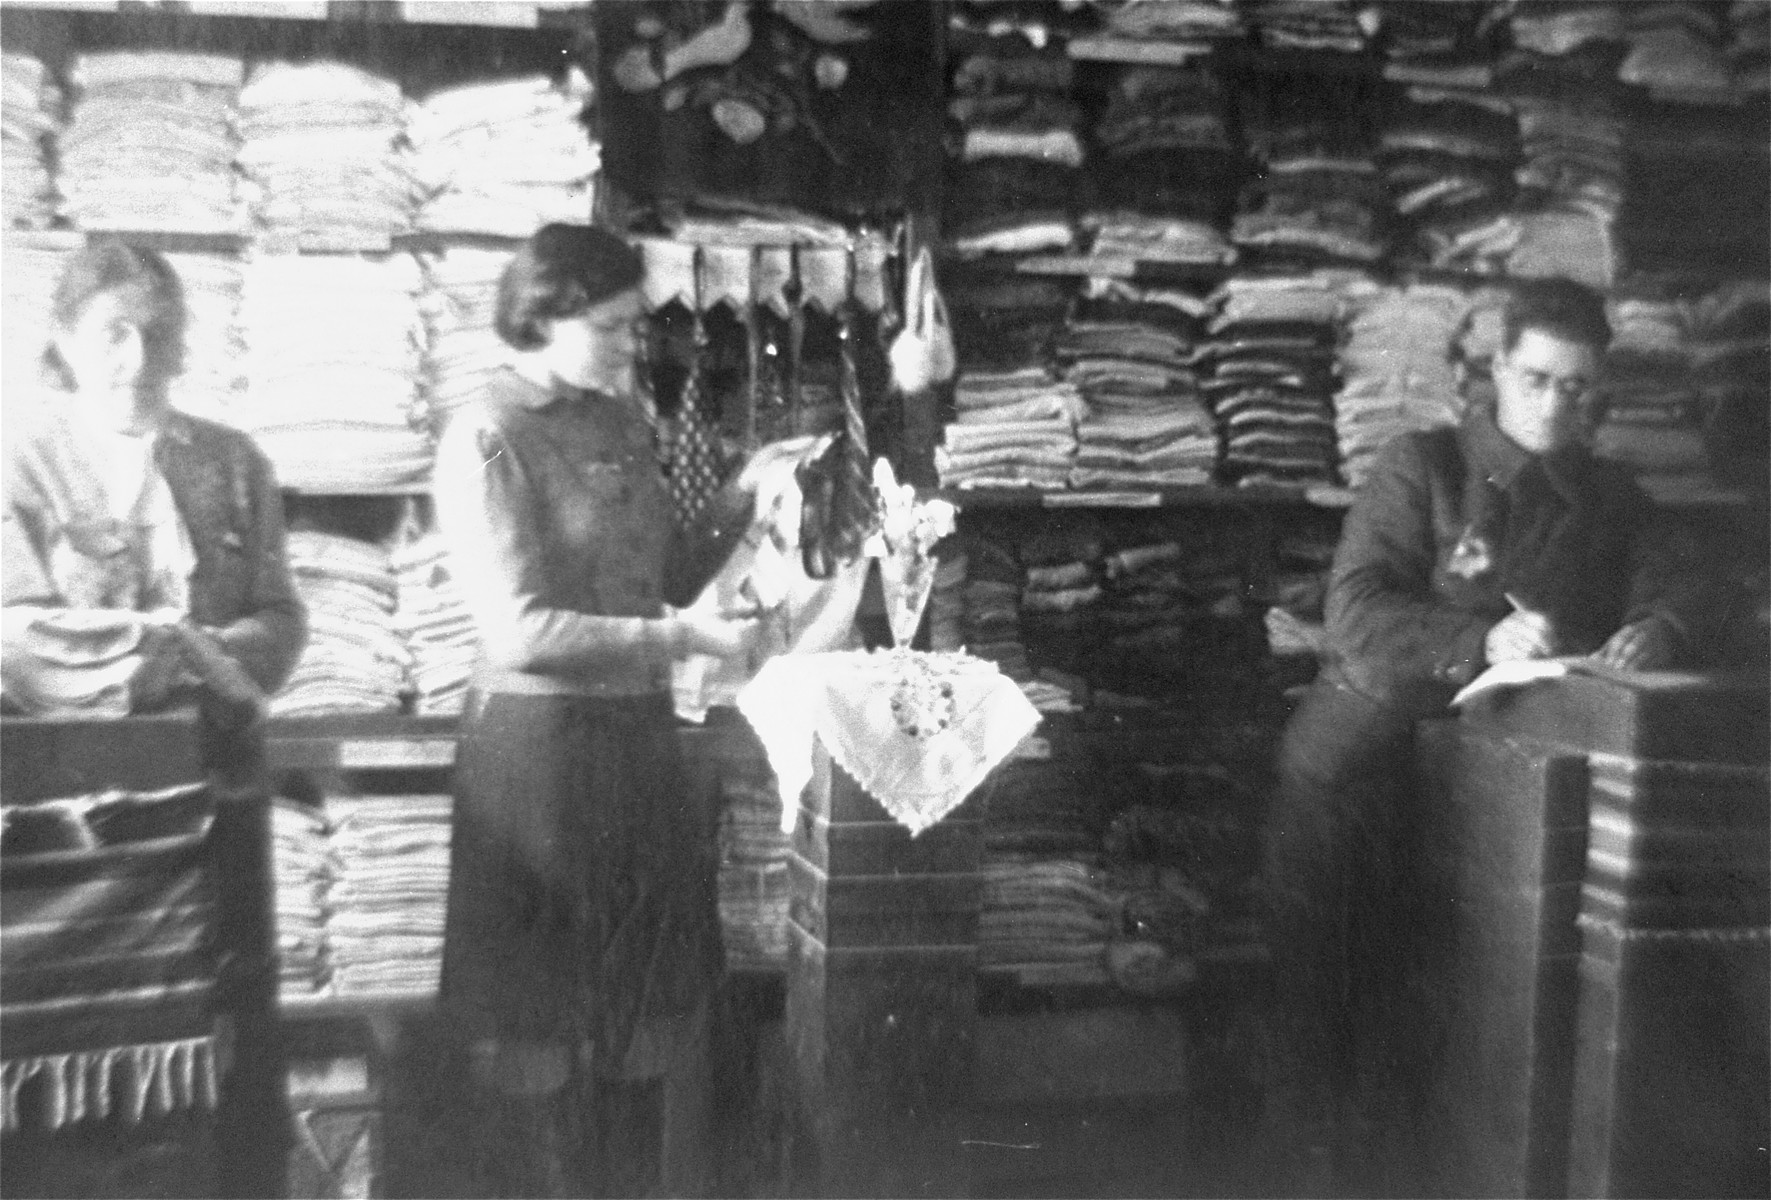 Jews working in a storeroom of a workshop in the Glubokoye ghetto.